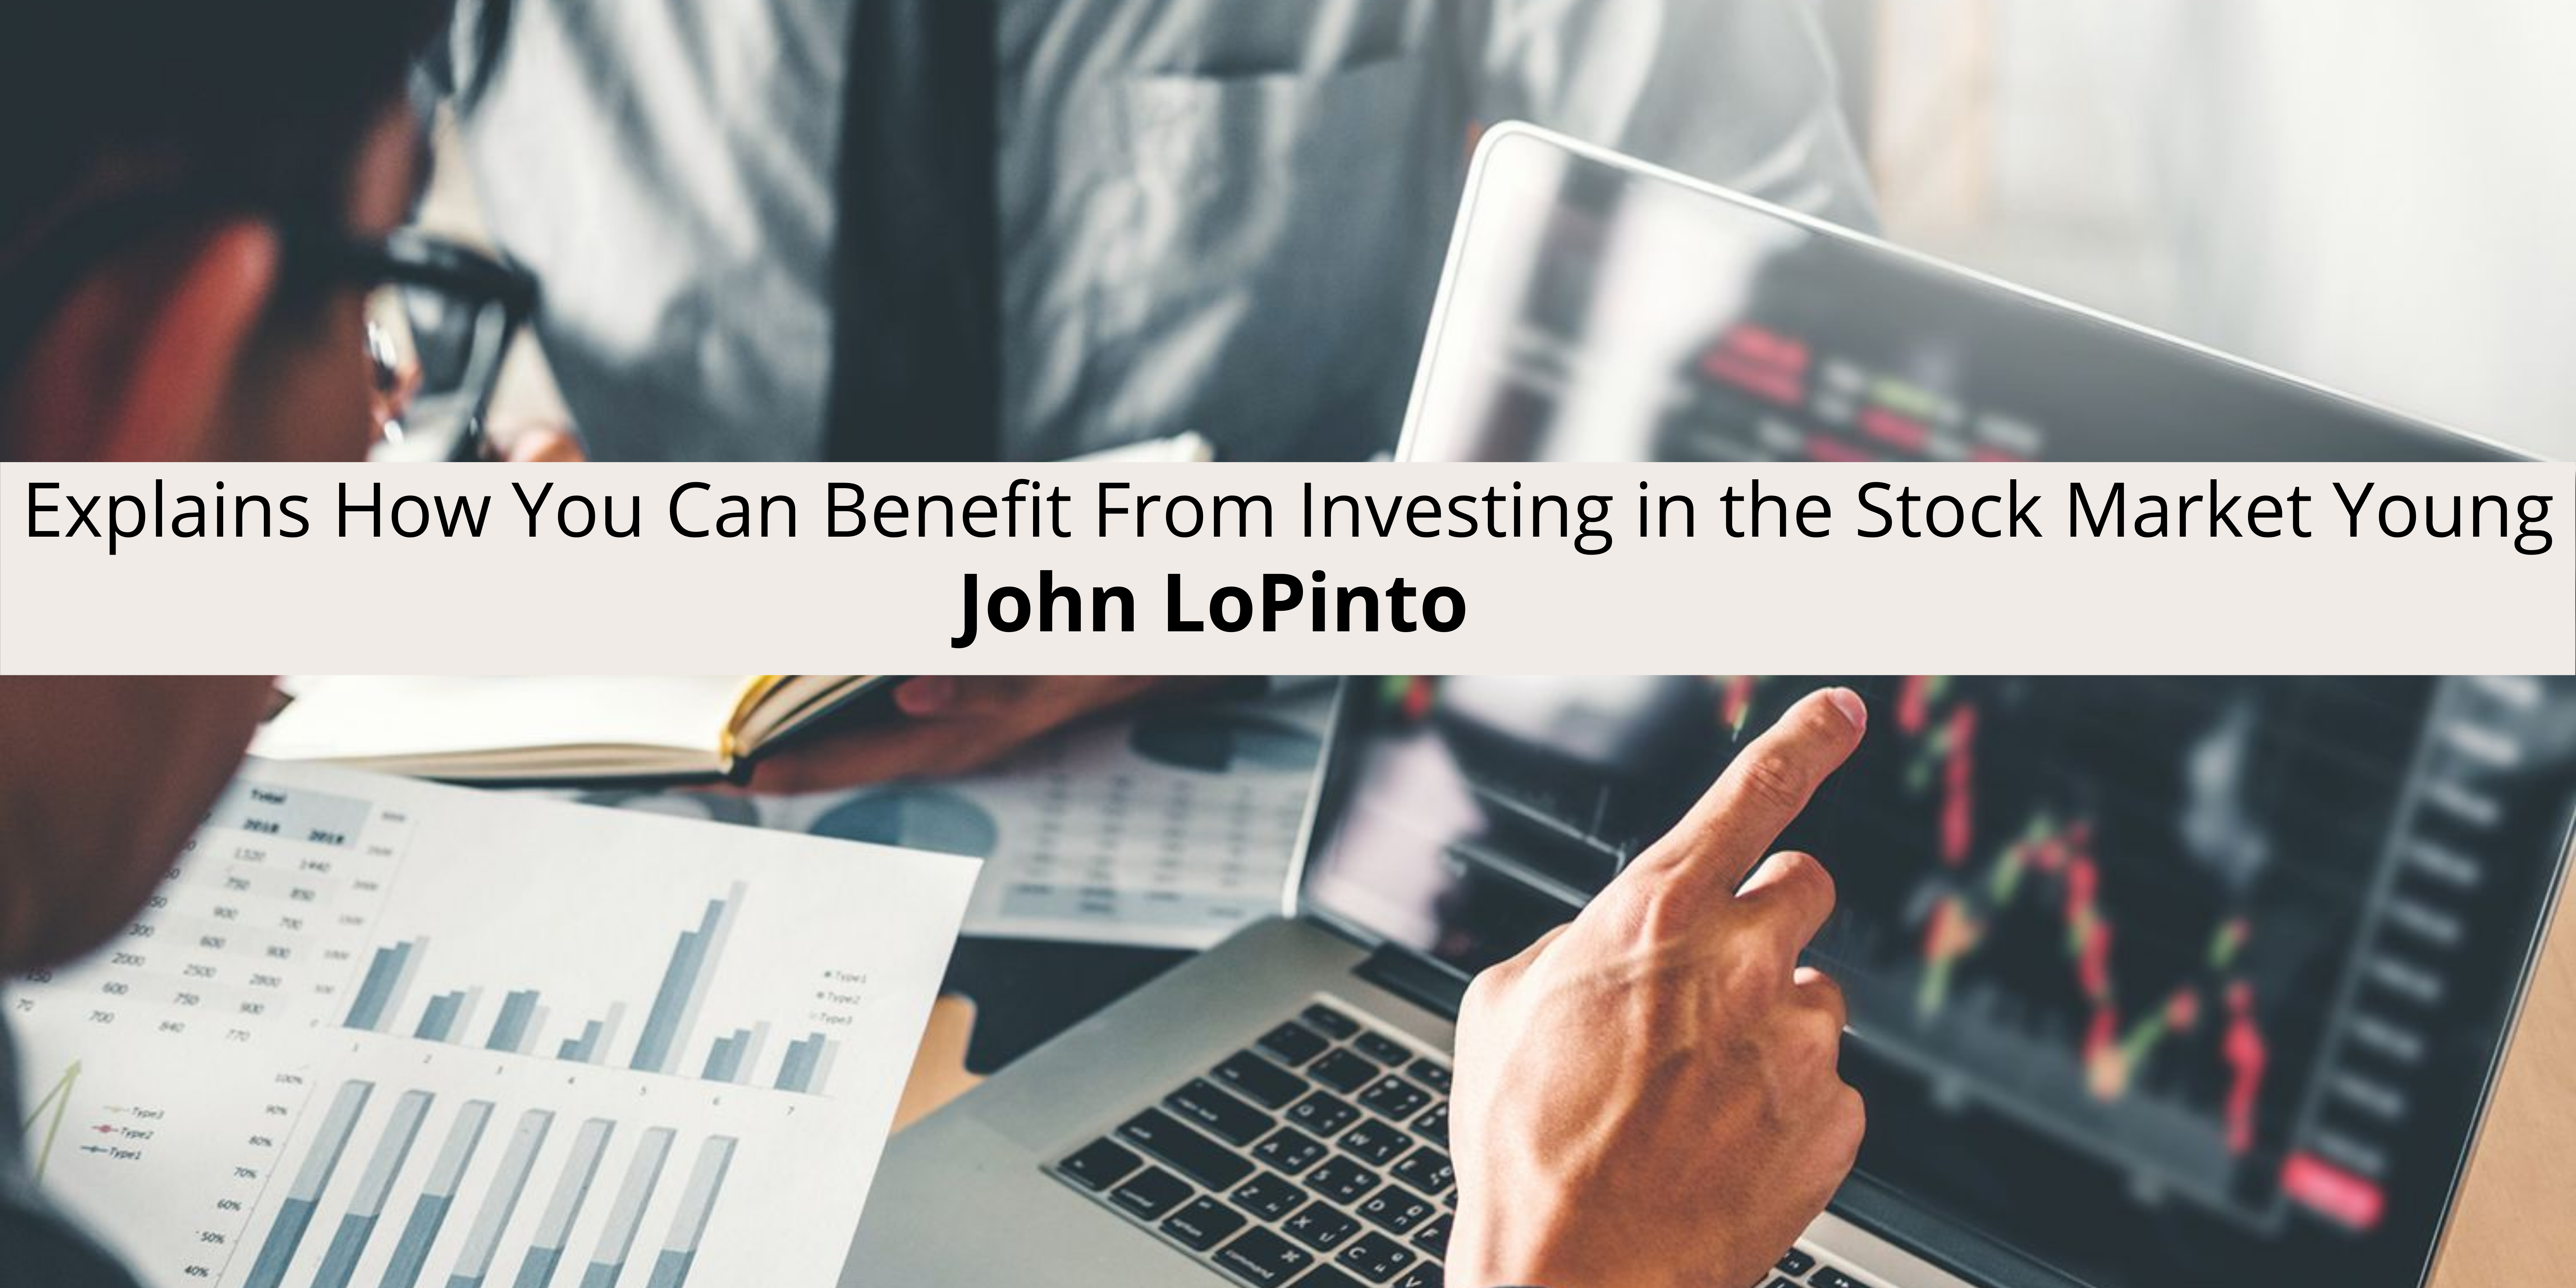 John LoPinto Explains How You Can Benefit in the Stock Market Young